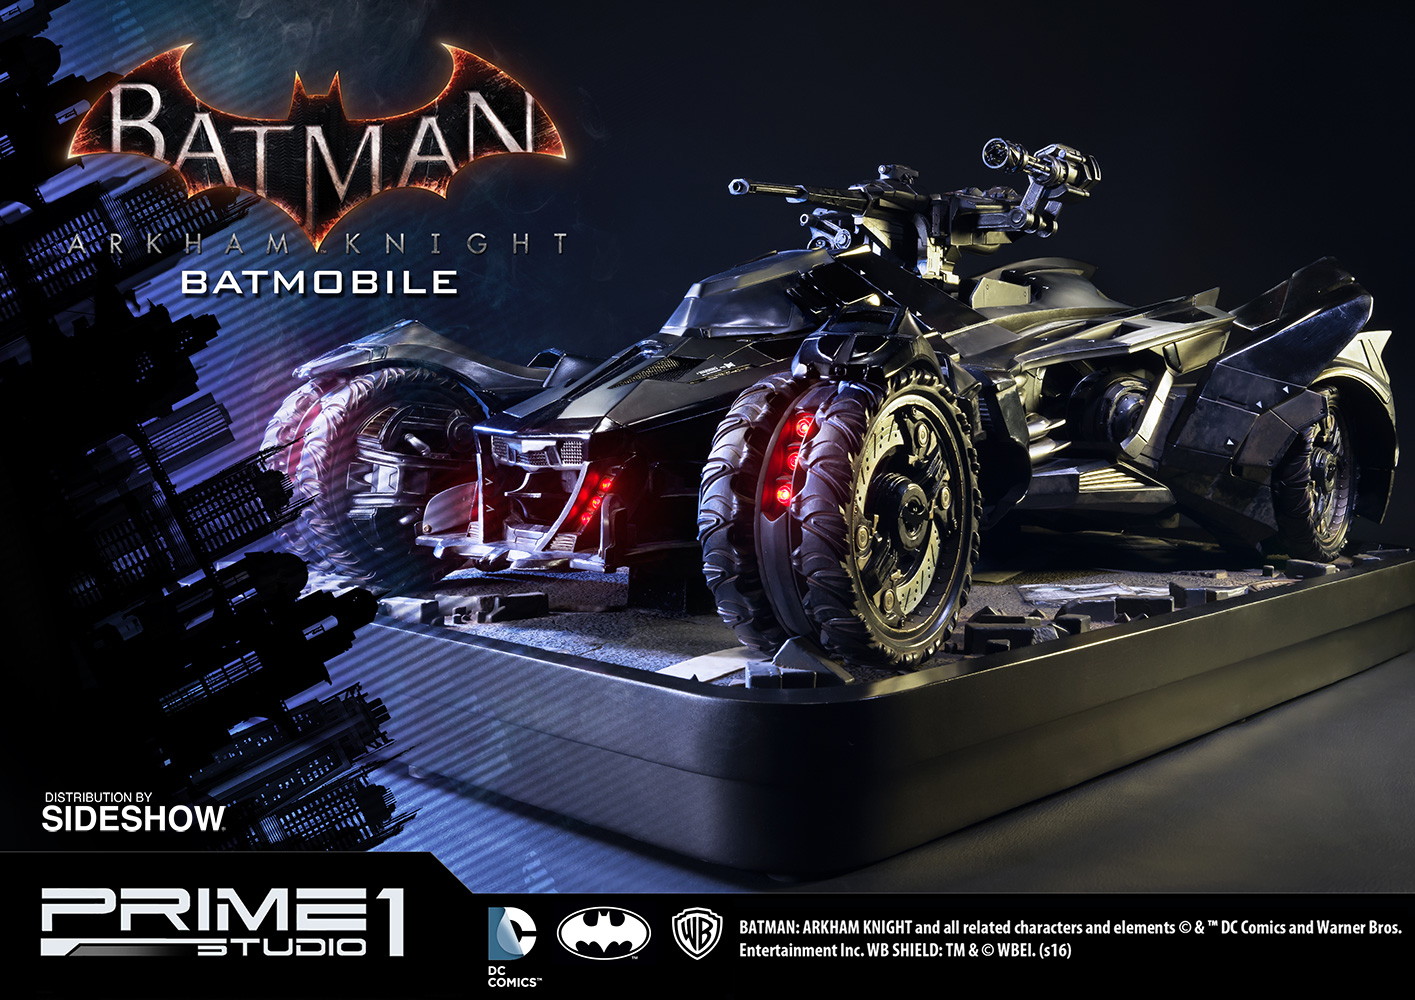 Batman: Arkham Knight Batmobile